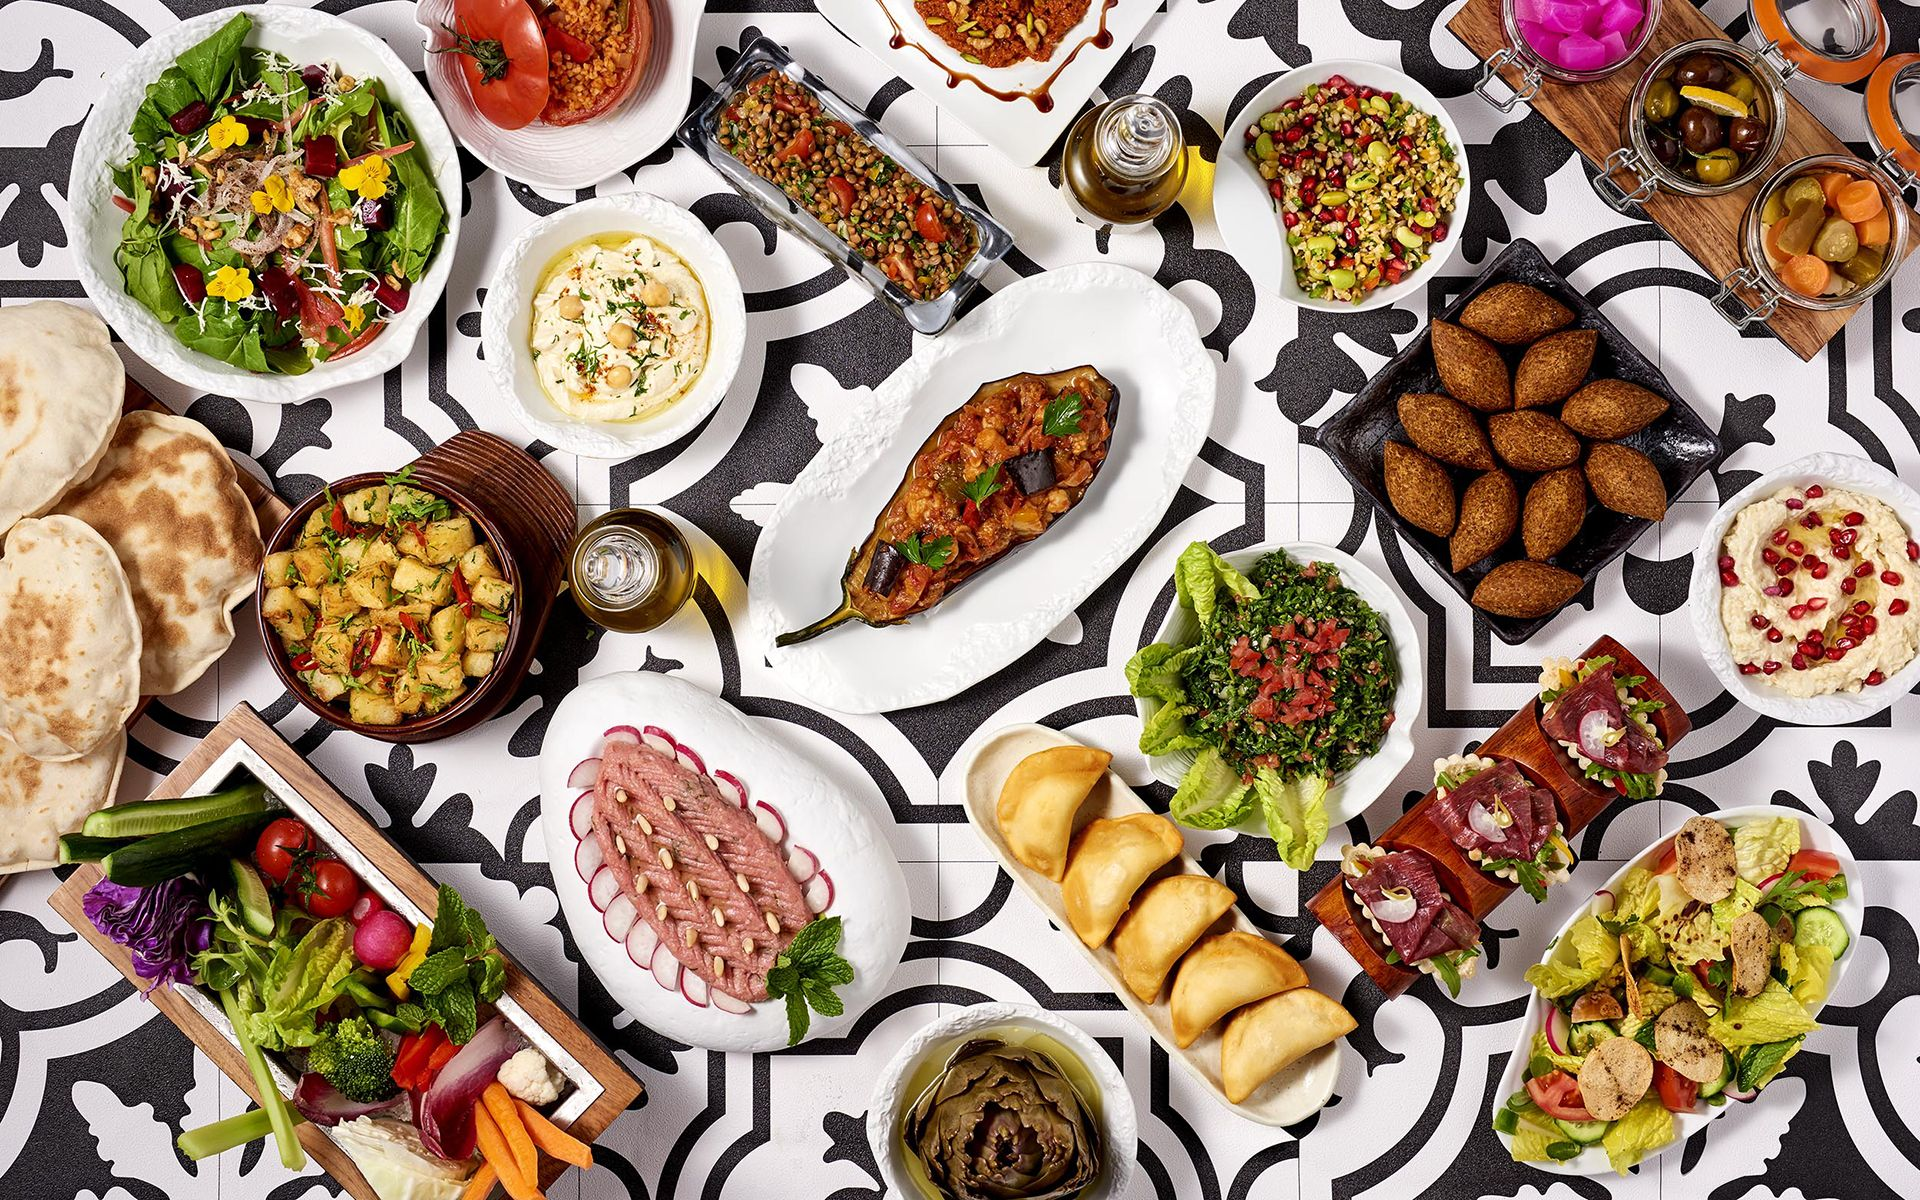 A Hearty Lebanese Feast At Mandarin Oriental Kuala Lumpur, To Spice Up All Appetites